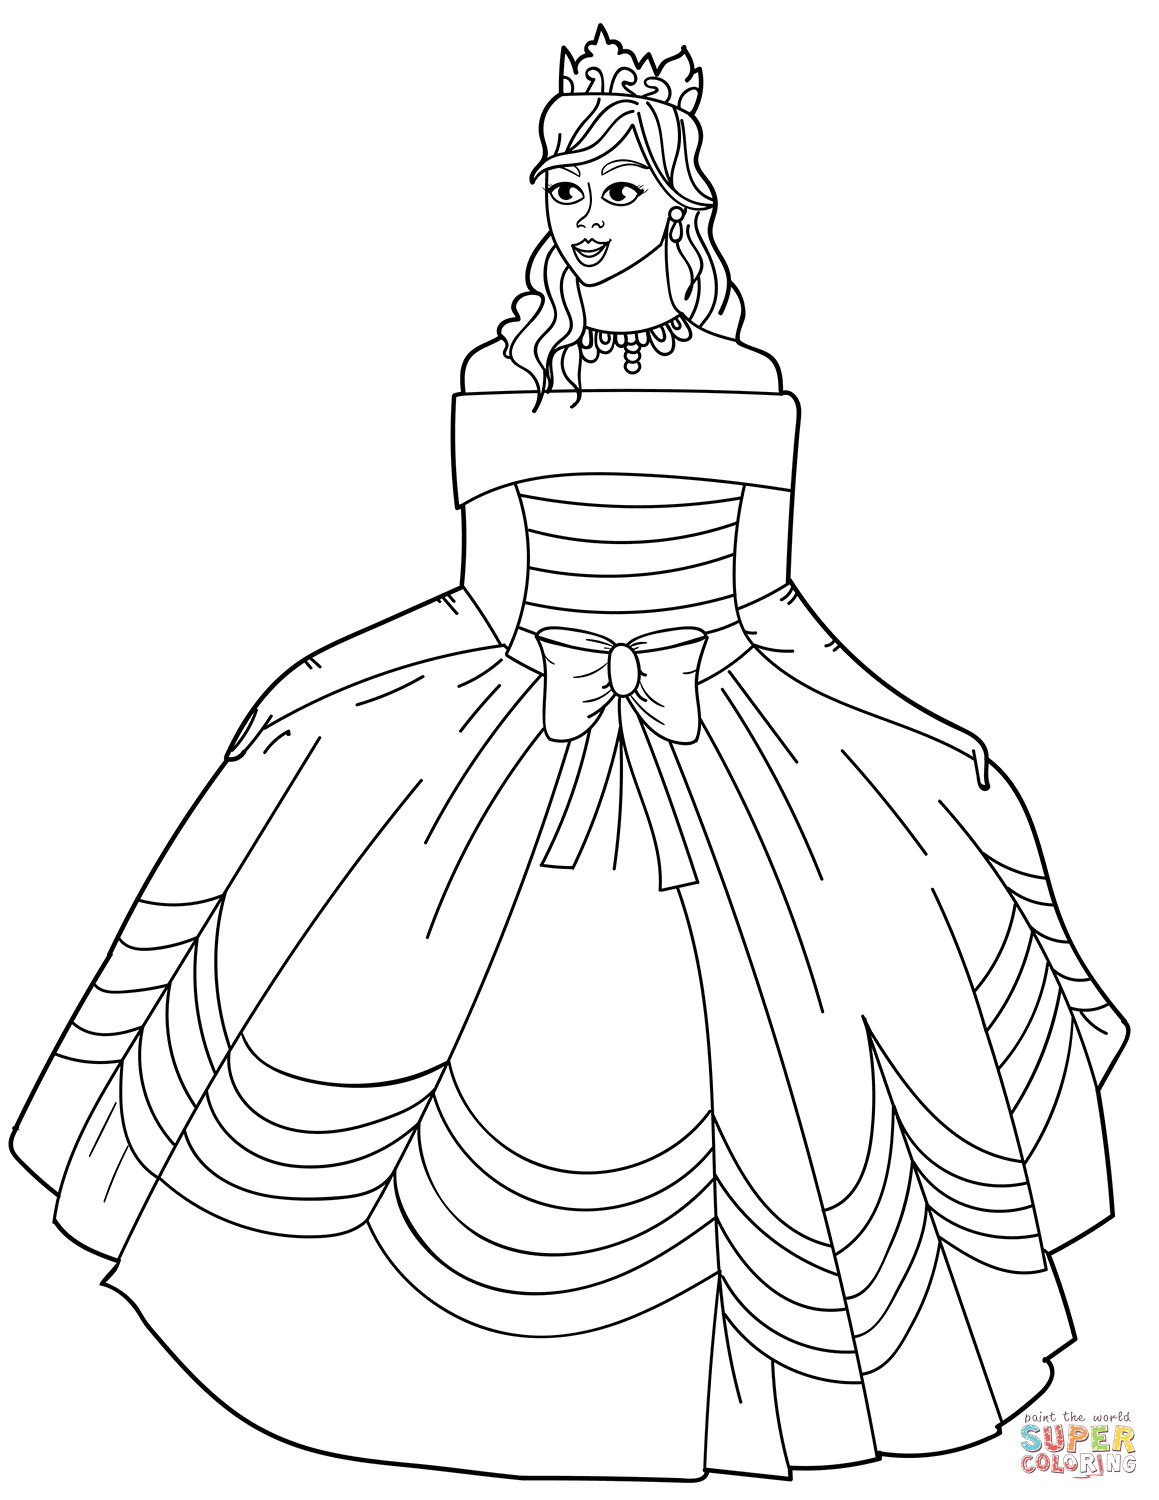 Coloring Sheets For Girls Princess Dresses  Princess in Ball Gown f the Shoulder Dress coloring page